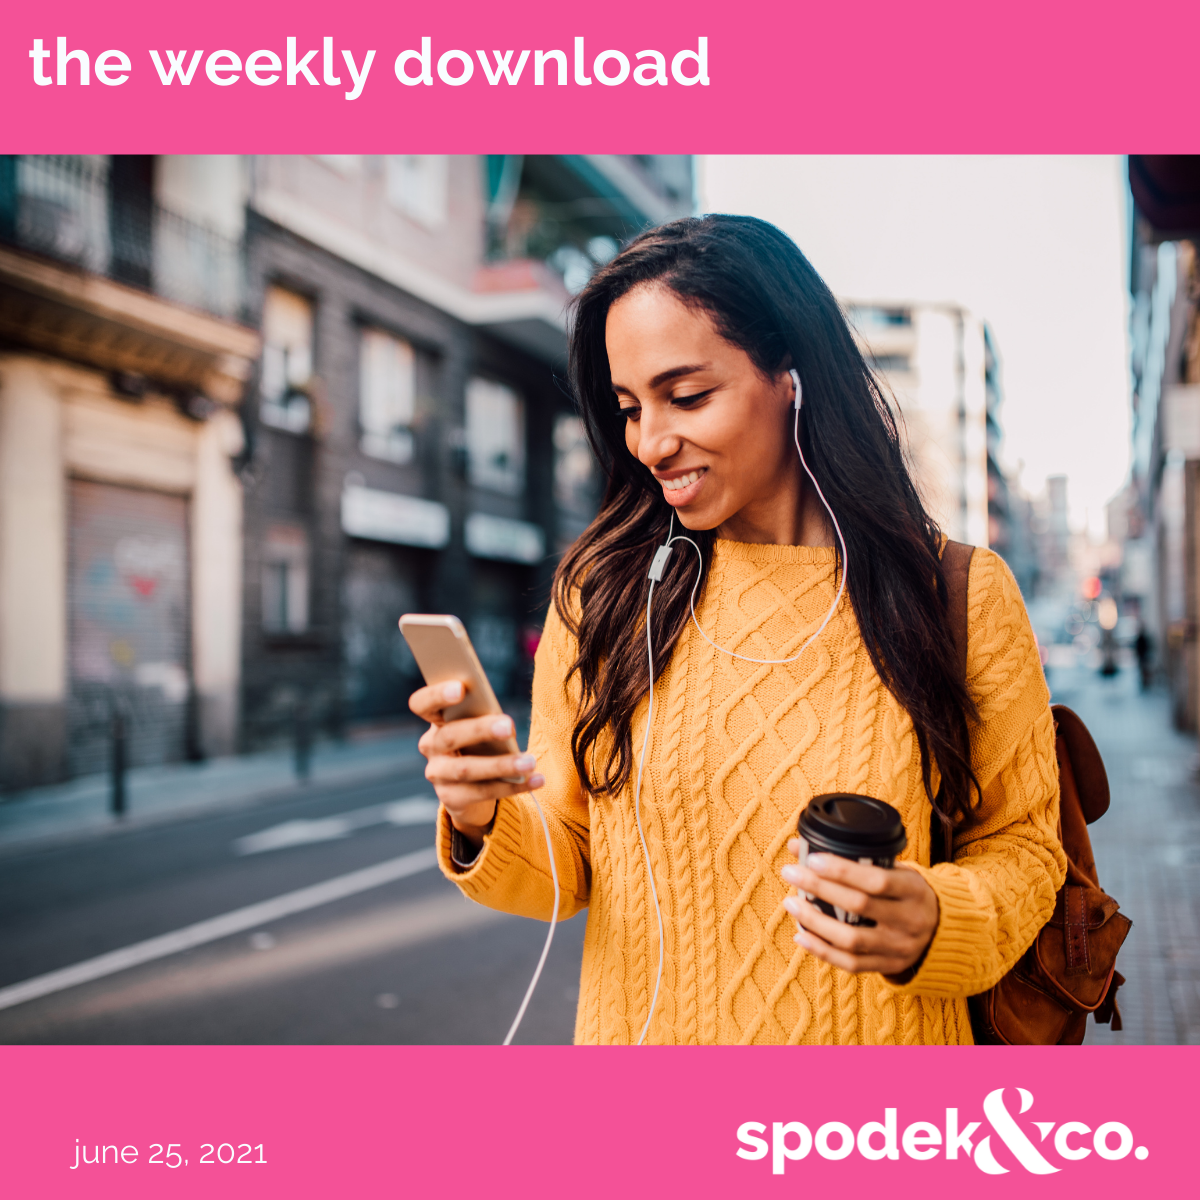 The Weekly Download – June 25, 2021